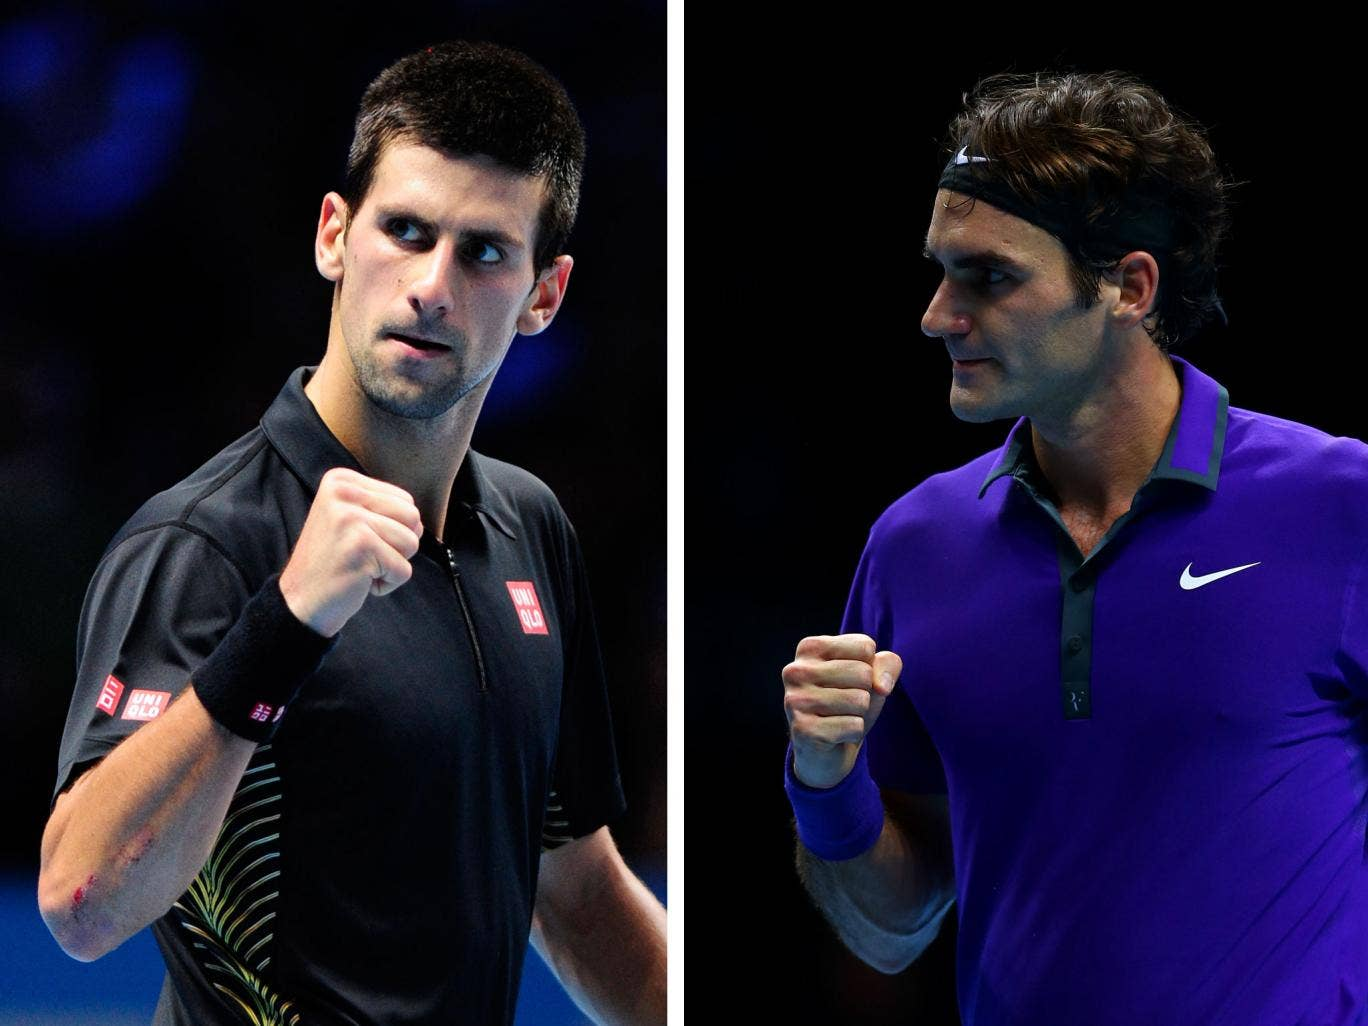 Novak Djokovic has claimed that a lack of movement is to blame for Roger Federer's poor form this season